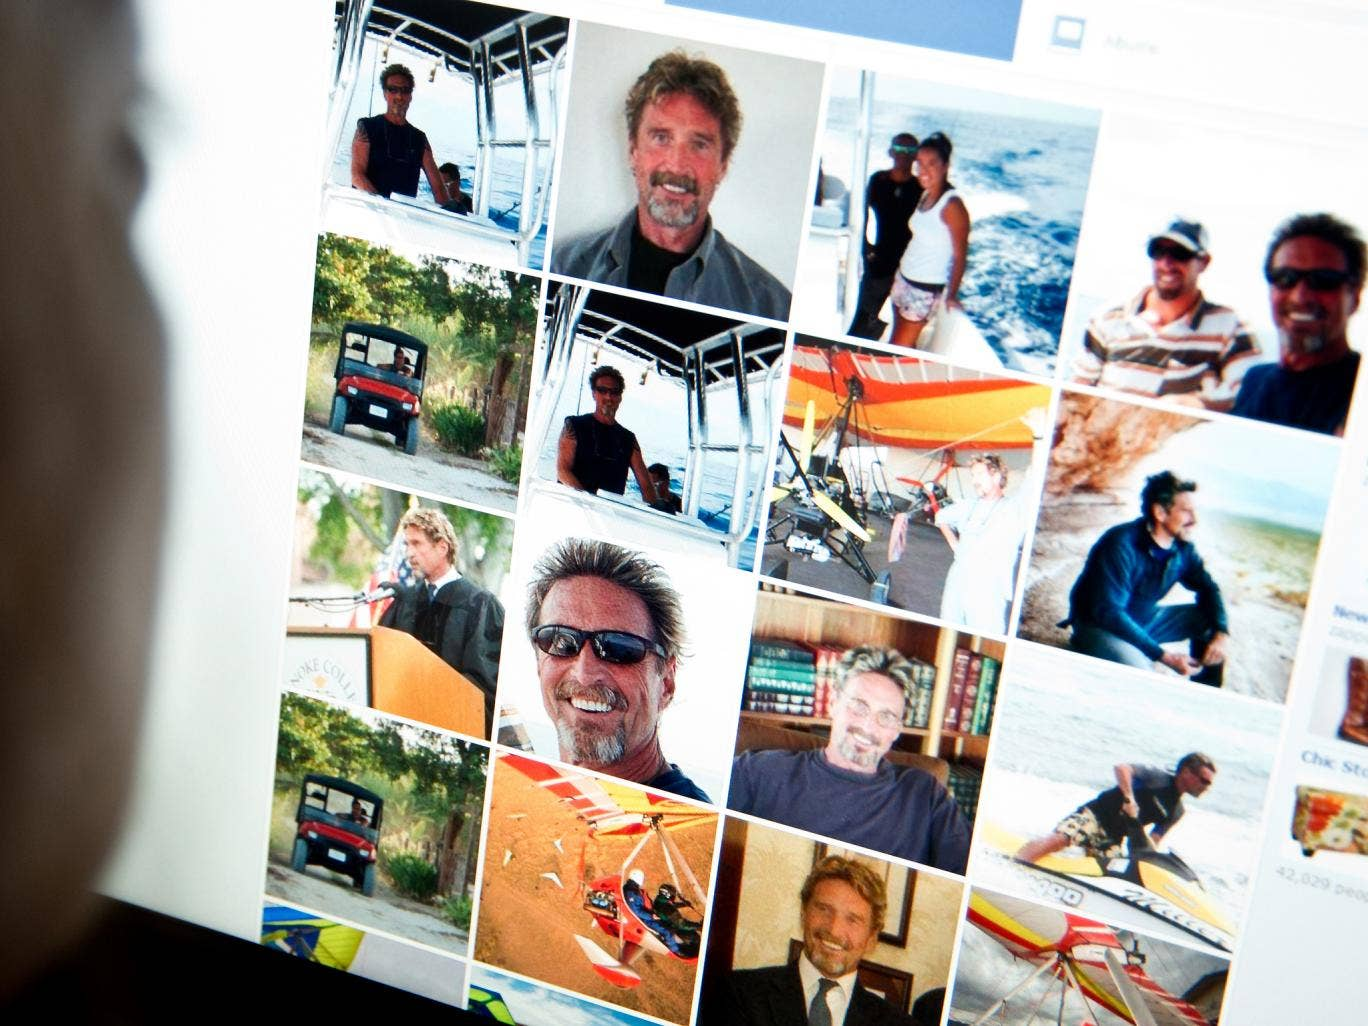 An internet users viewing a facebook page belonging to John McAfee